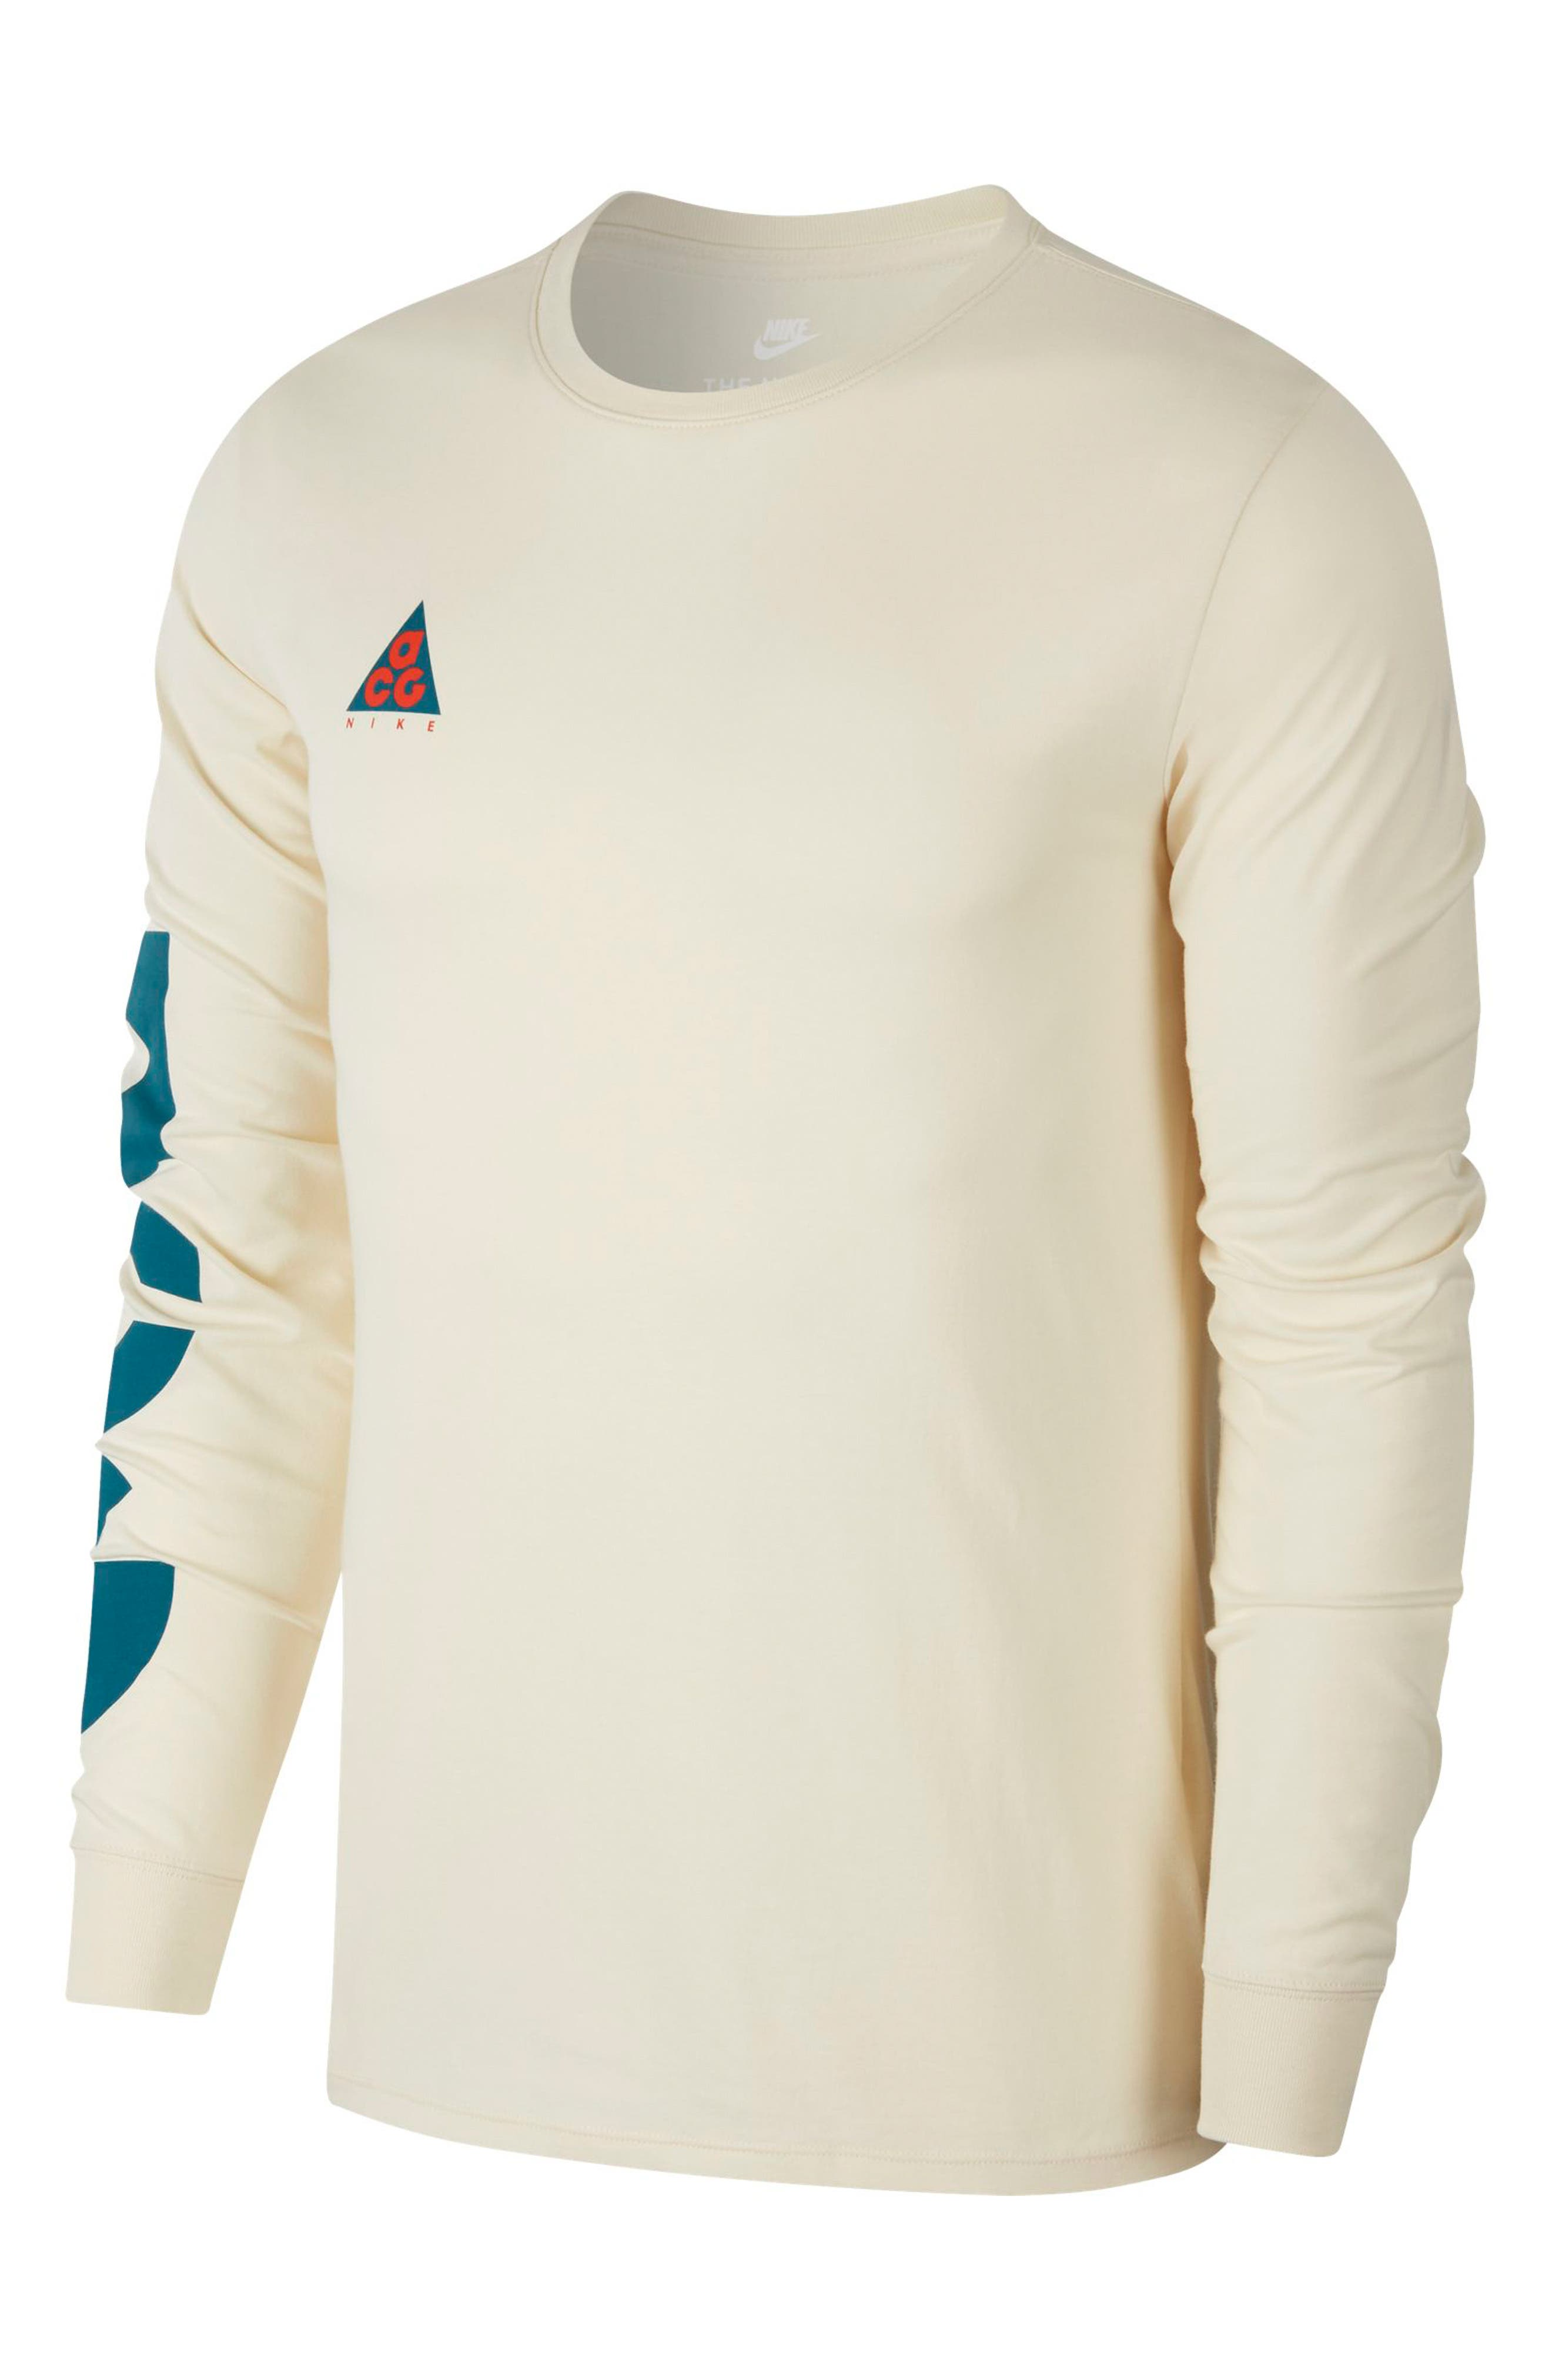 NSW ACG Graphic T-Shirt,                             Main thumbnail 1, color,                             LIGHT CREAM/ GEODE TEAL